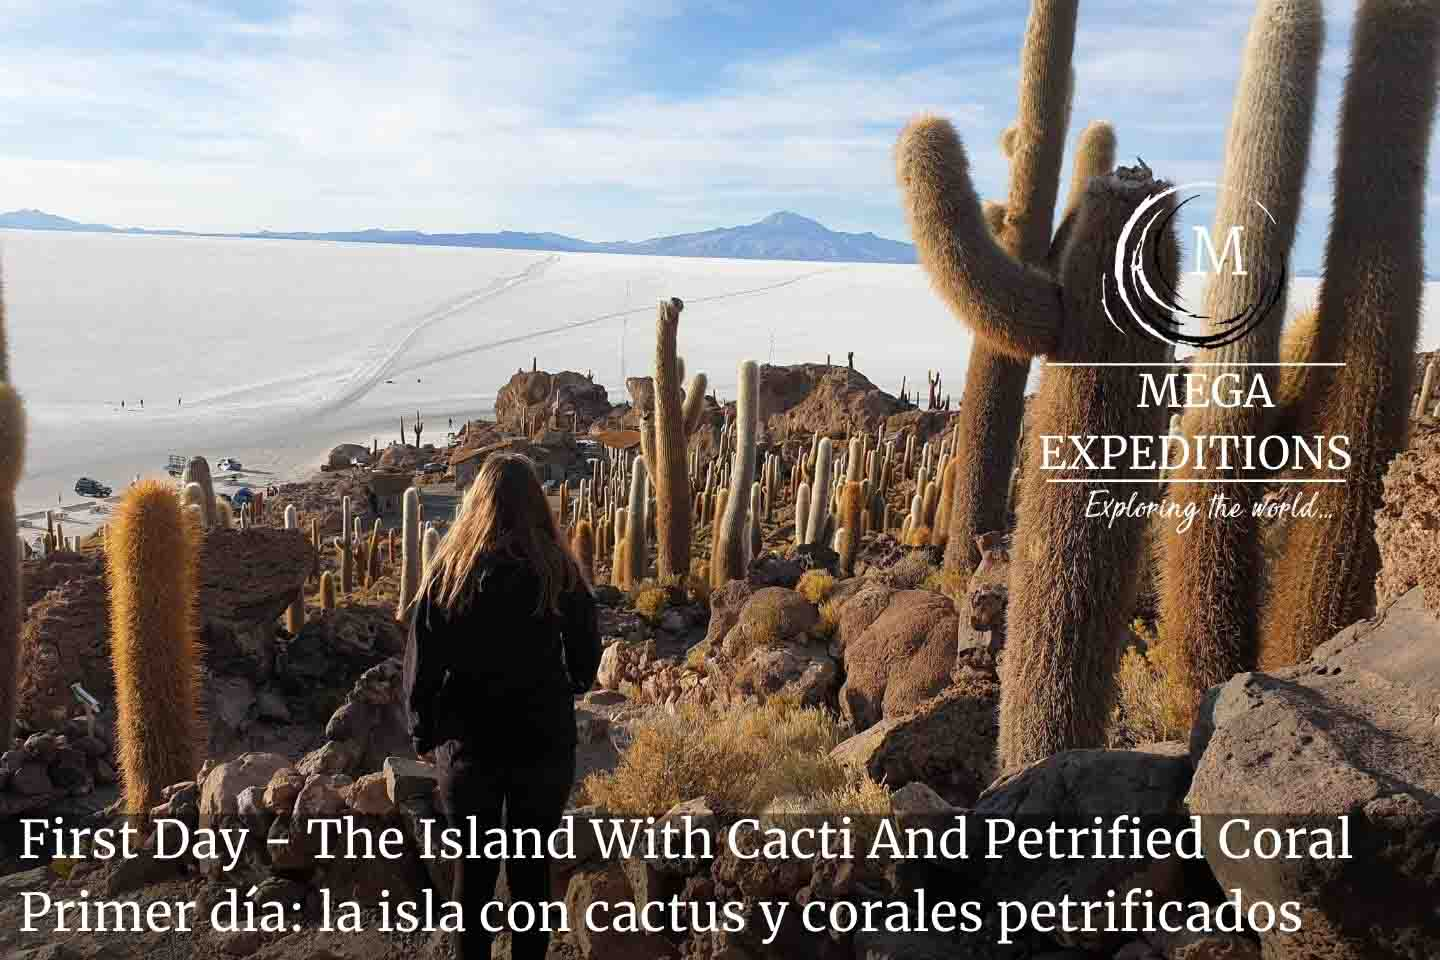 First Day - The Island With Cacti And Petrified Coral in uyuni salt flat